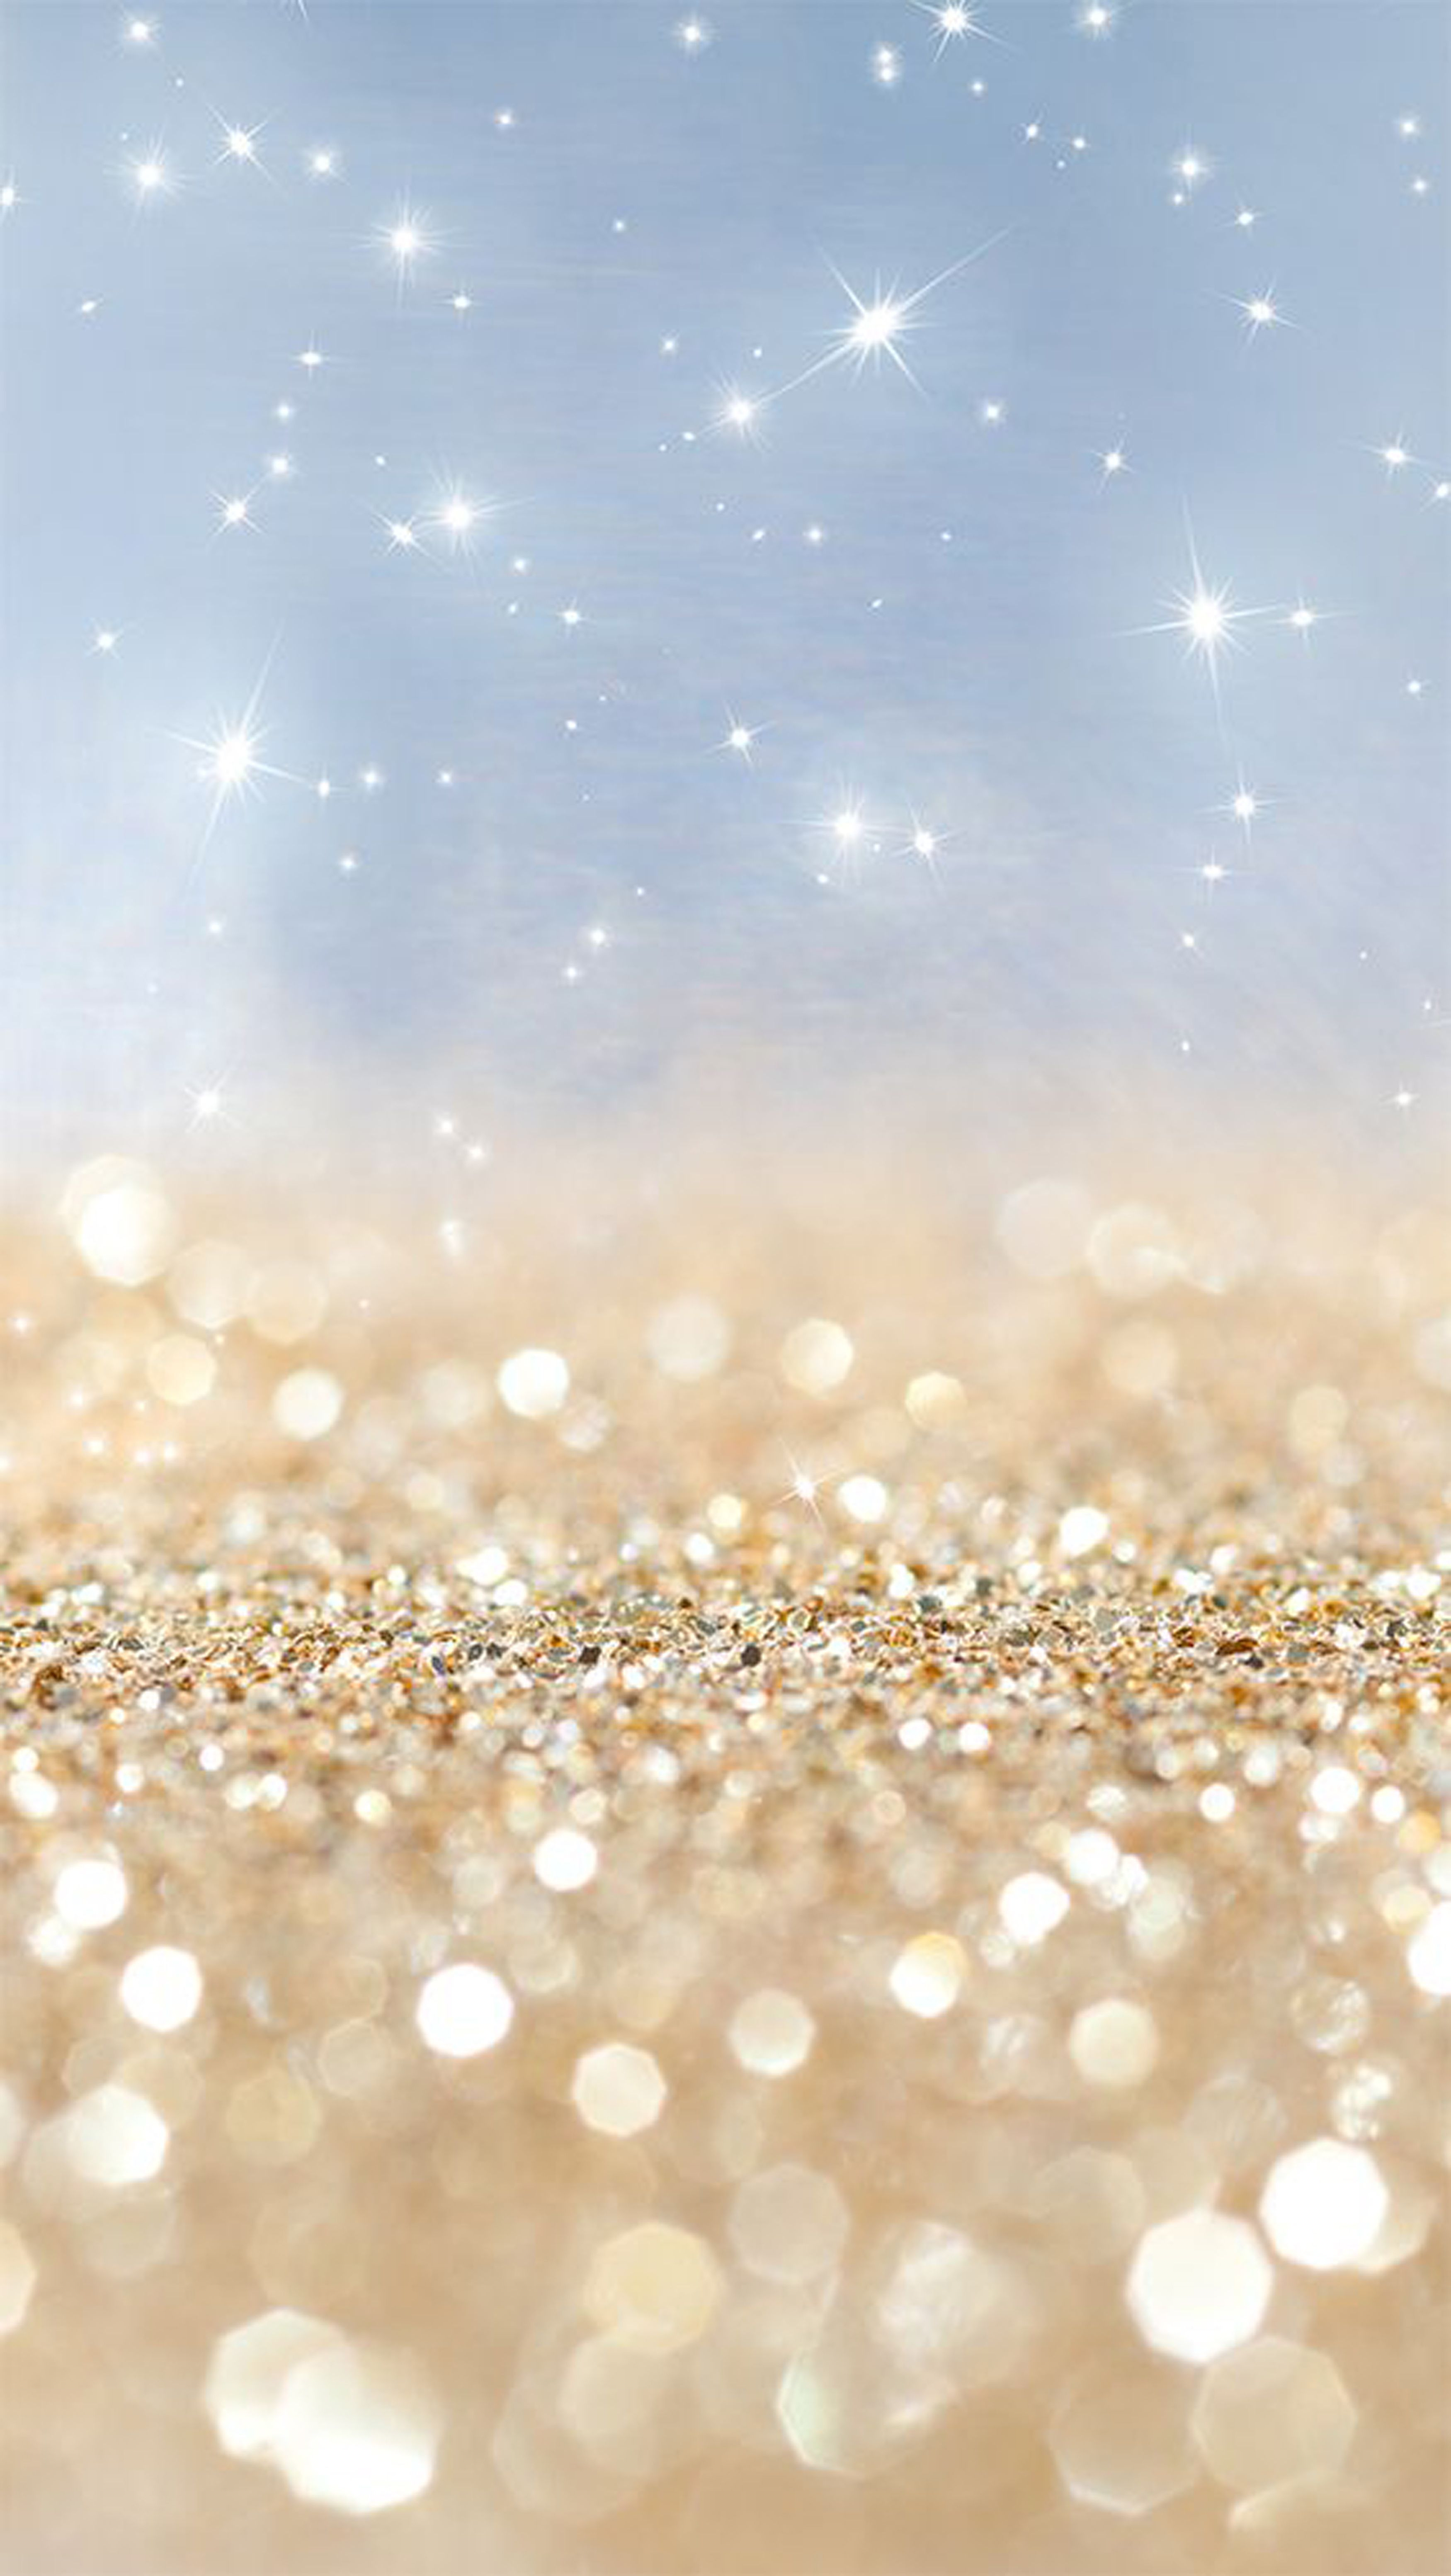 List of Good Black Wallpaper Iphone Glitter Gold for iPhone XS Max Free